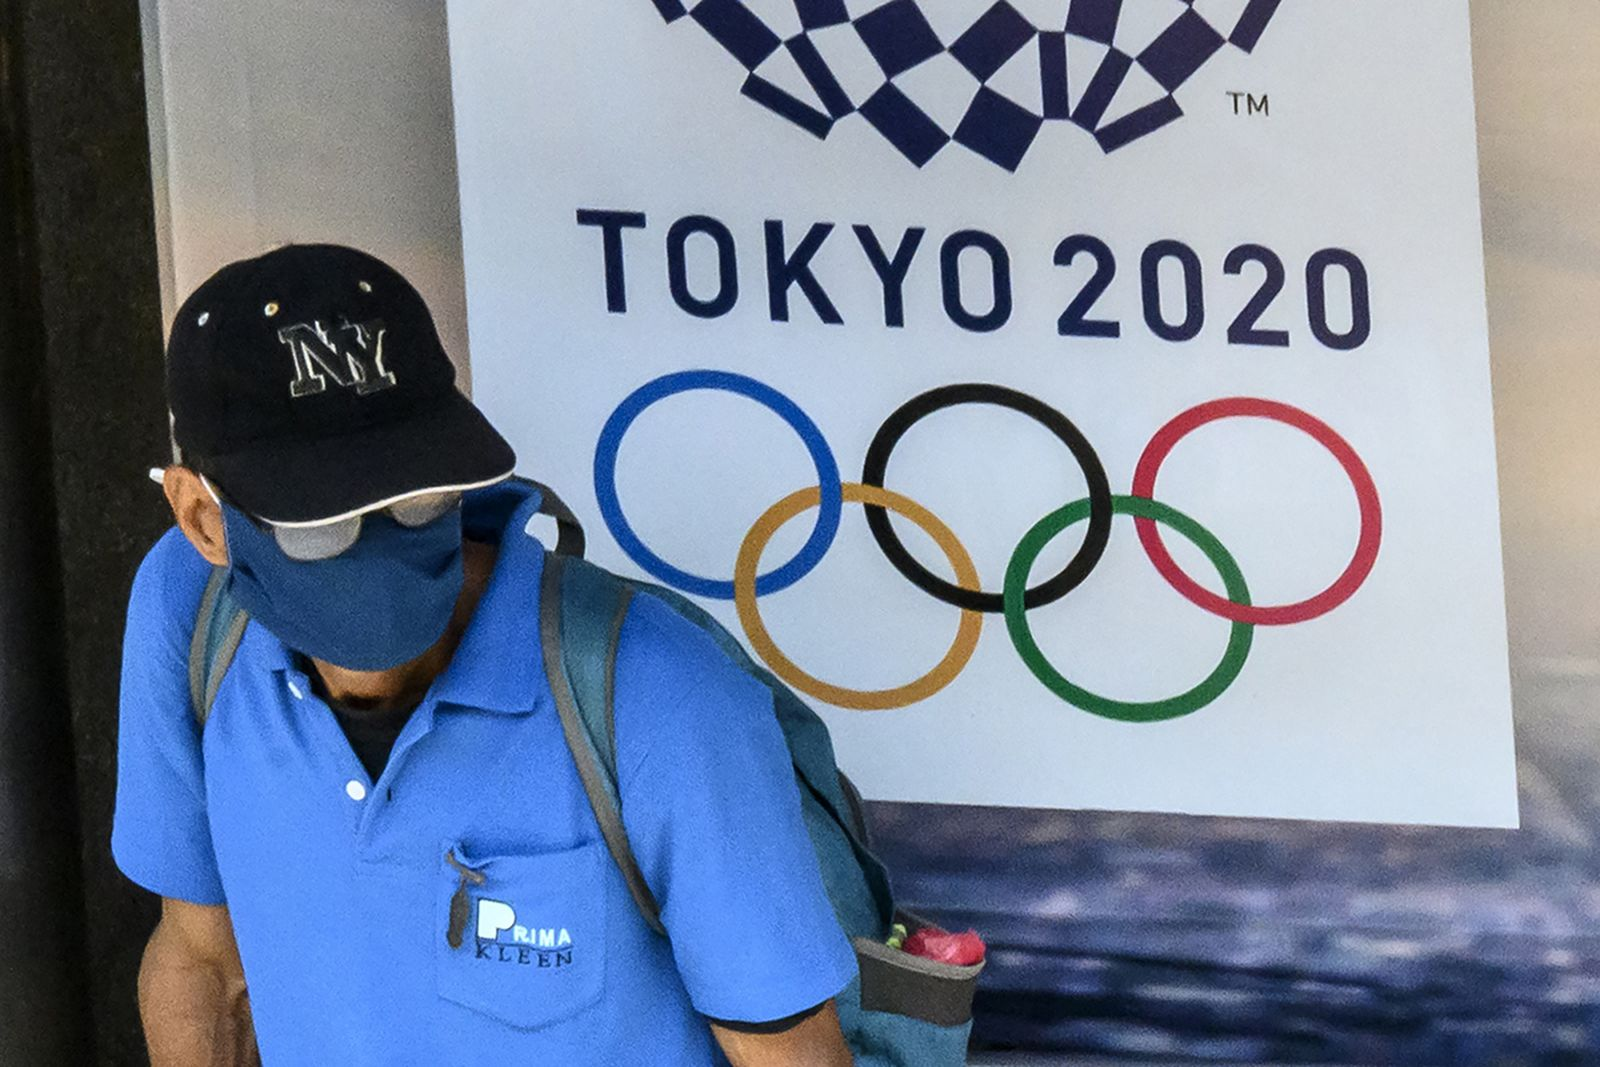 Tokyo 2020 Olympics sign man with mask